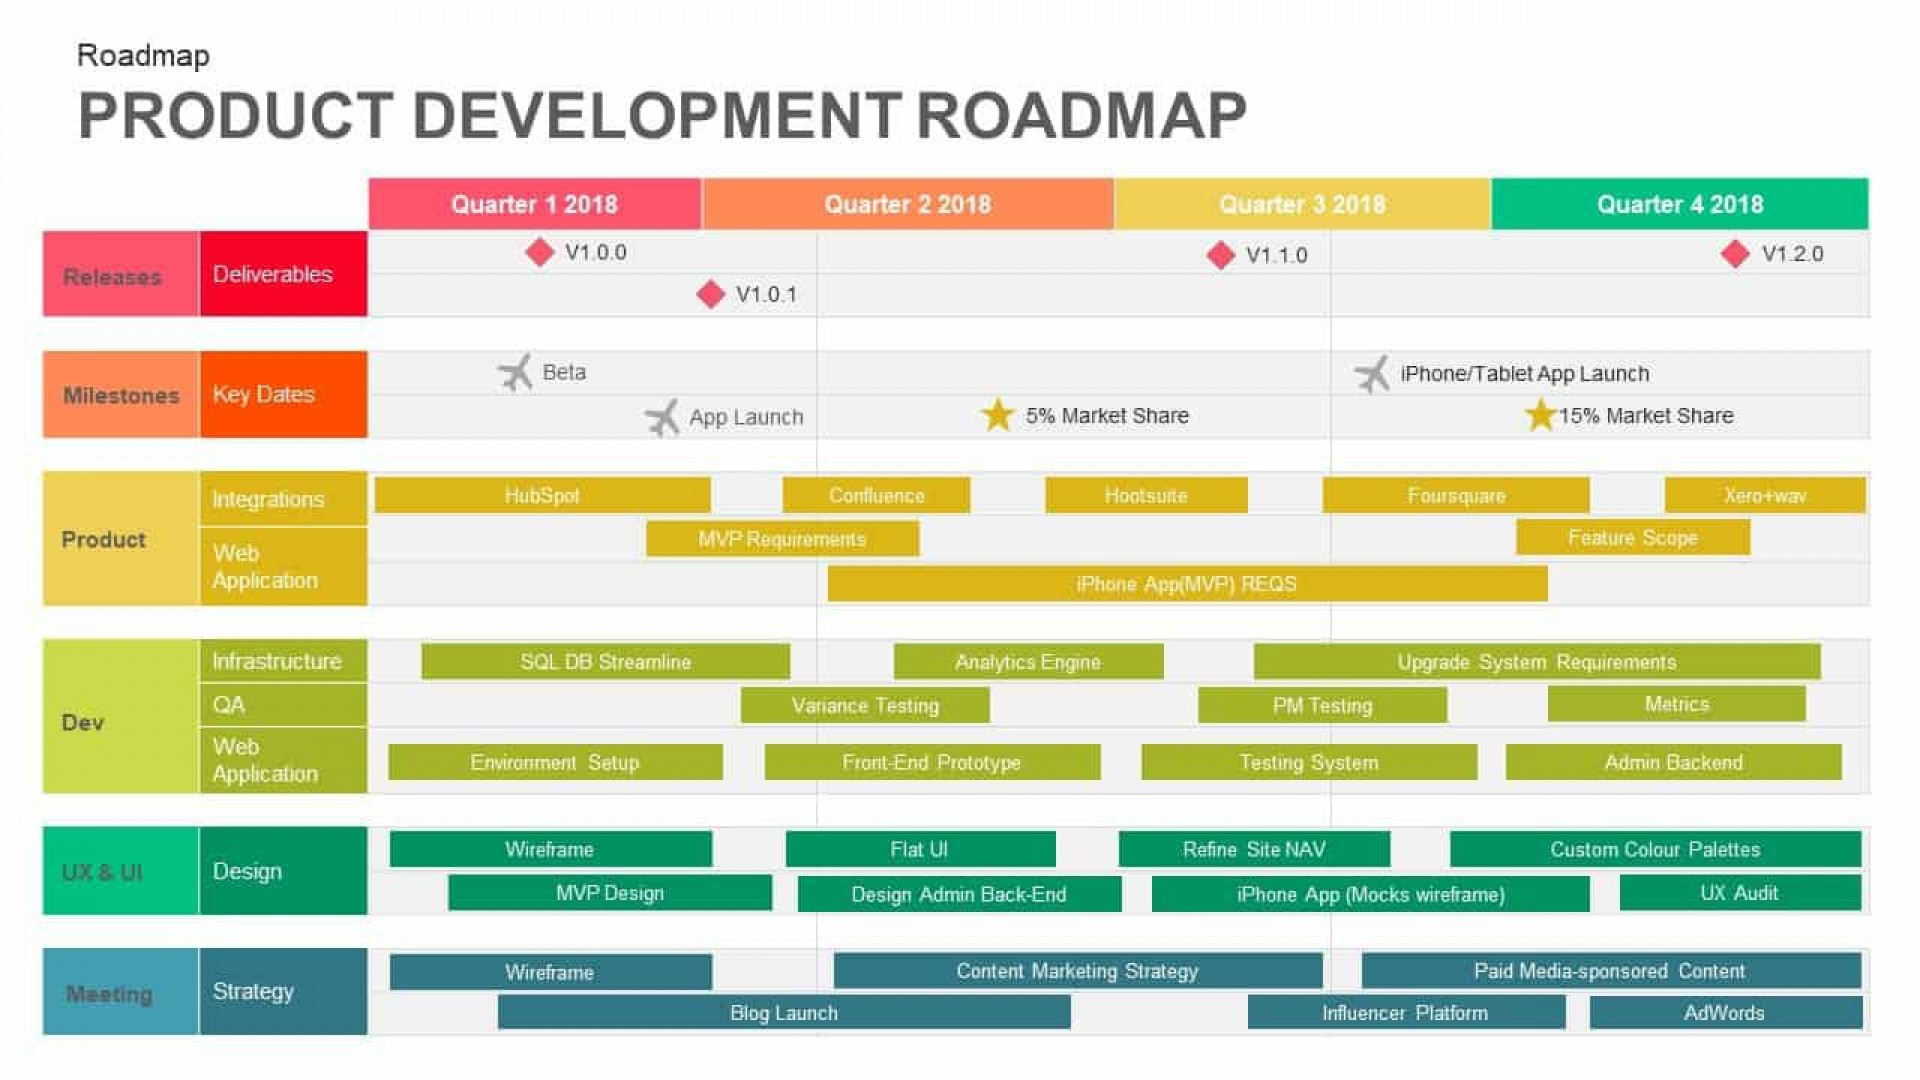 004 Incredible Road Map Template Powerpoint Photo  Roadmap Ppt Free Download Product1920